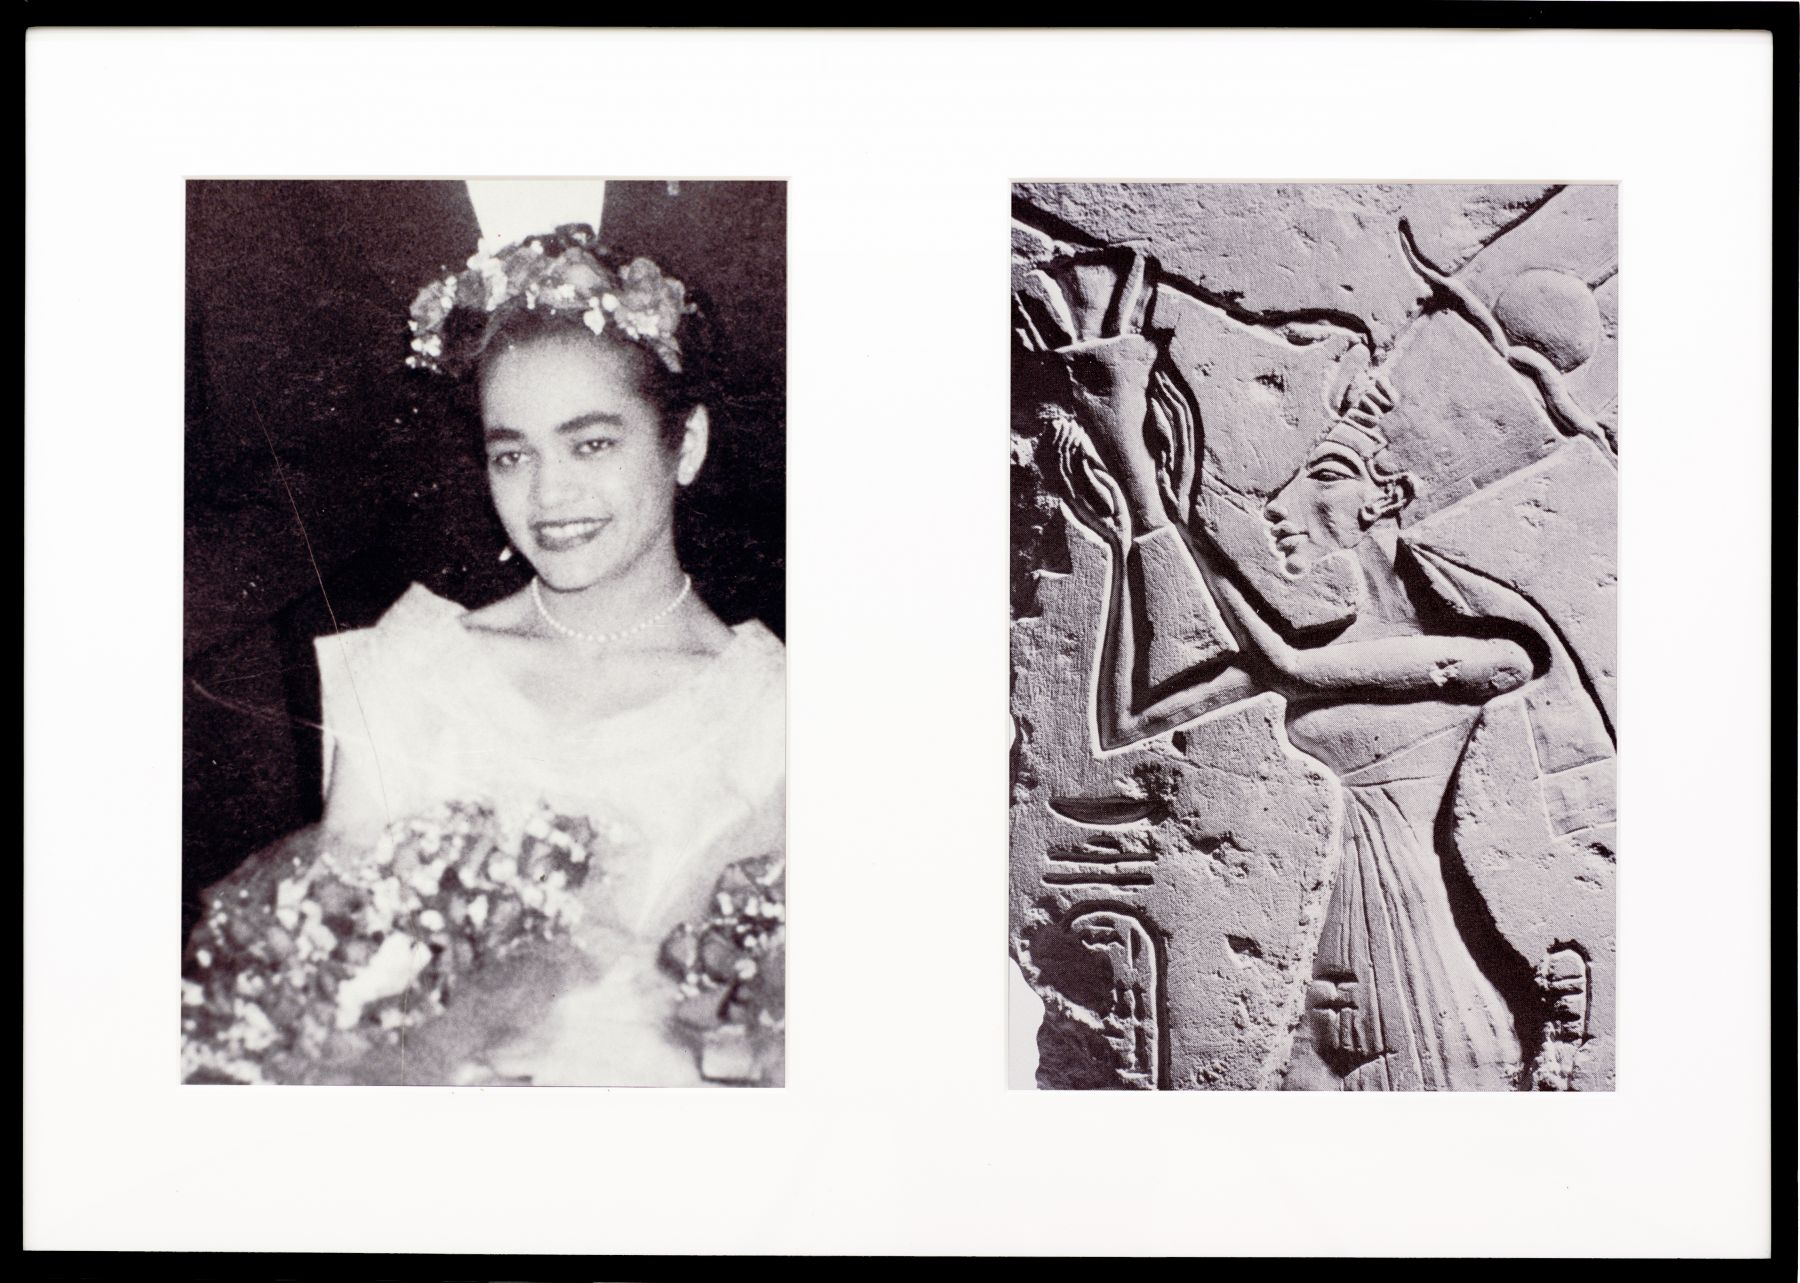 Miscegenated Family Album (Ceremonial Occasions I), L: Devonia as Matron of Honor; R: Nefertiti performing a lustration, 1980/1994, Cibachrome prints, 26h x 37w in, (66.04h x 93.98w cm)